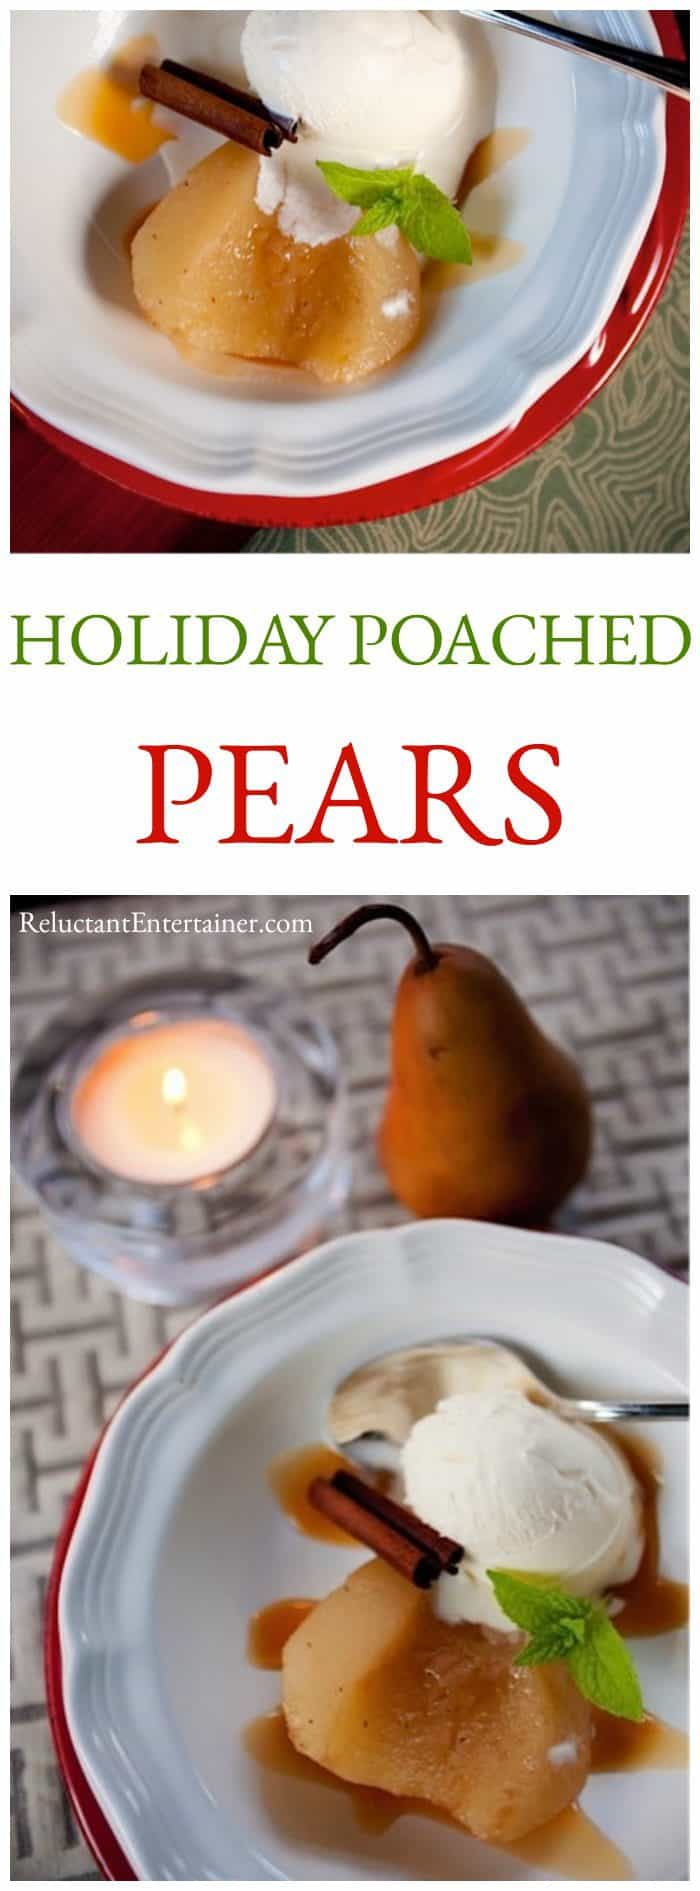 Holiday Poached Pears Recipe